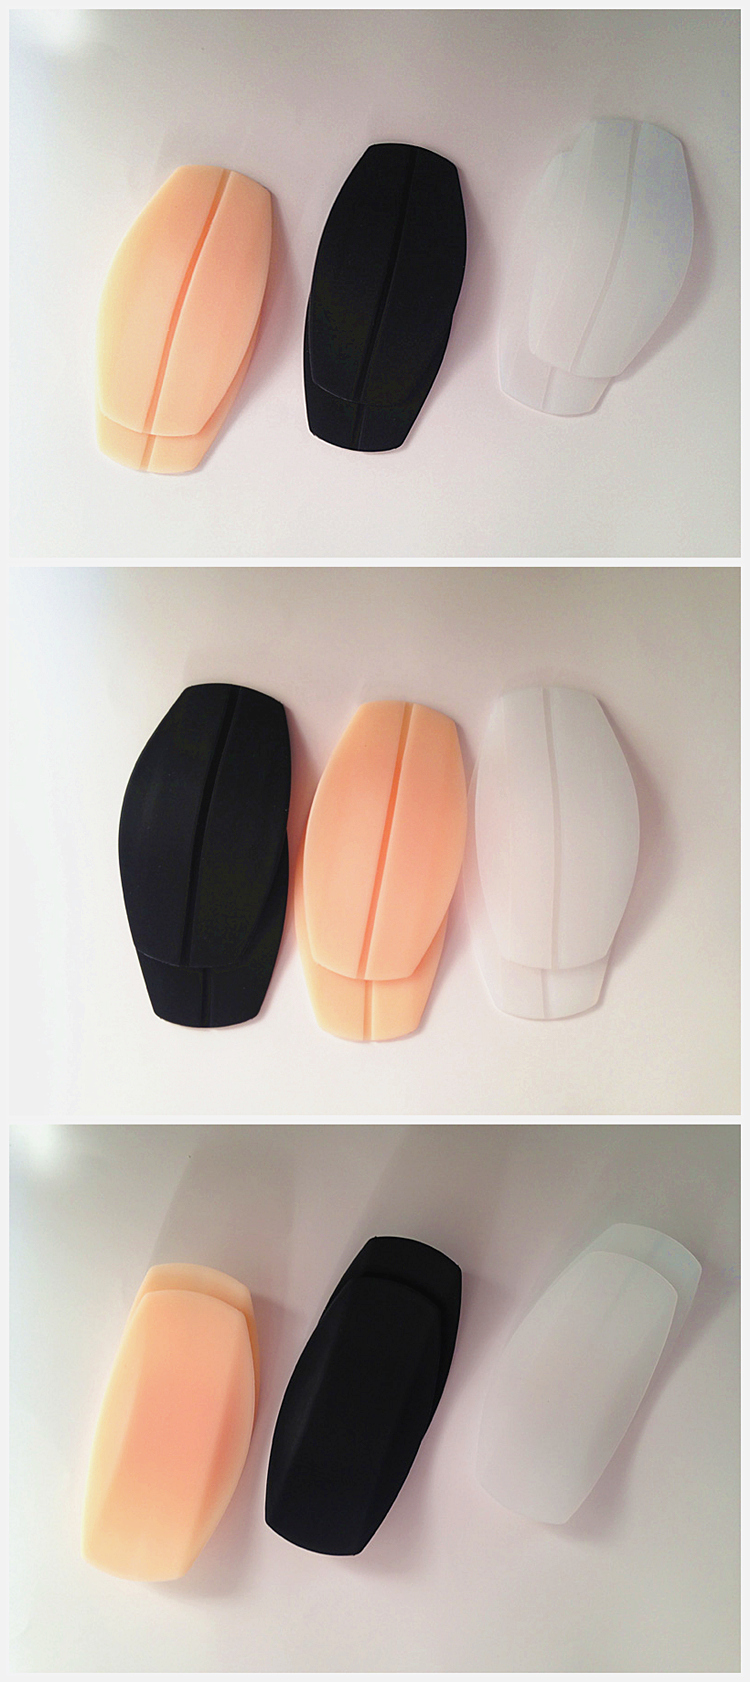 f488256fd58f3 Lady Protect Shoulders Bra Strap Pads Invisible Silicone Shoulder ...